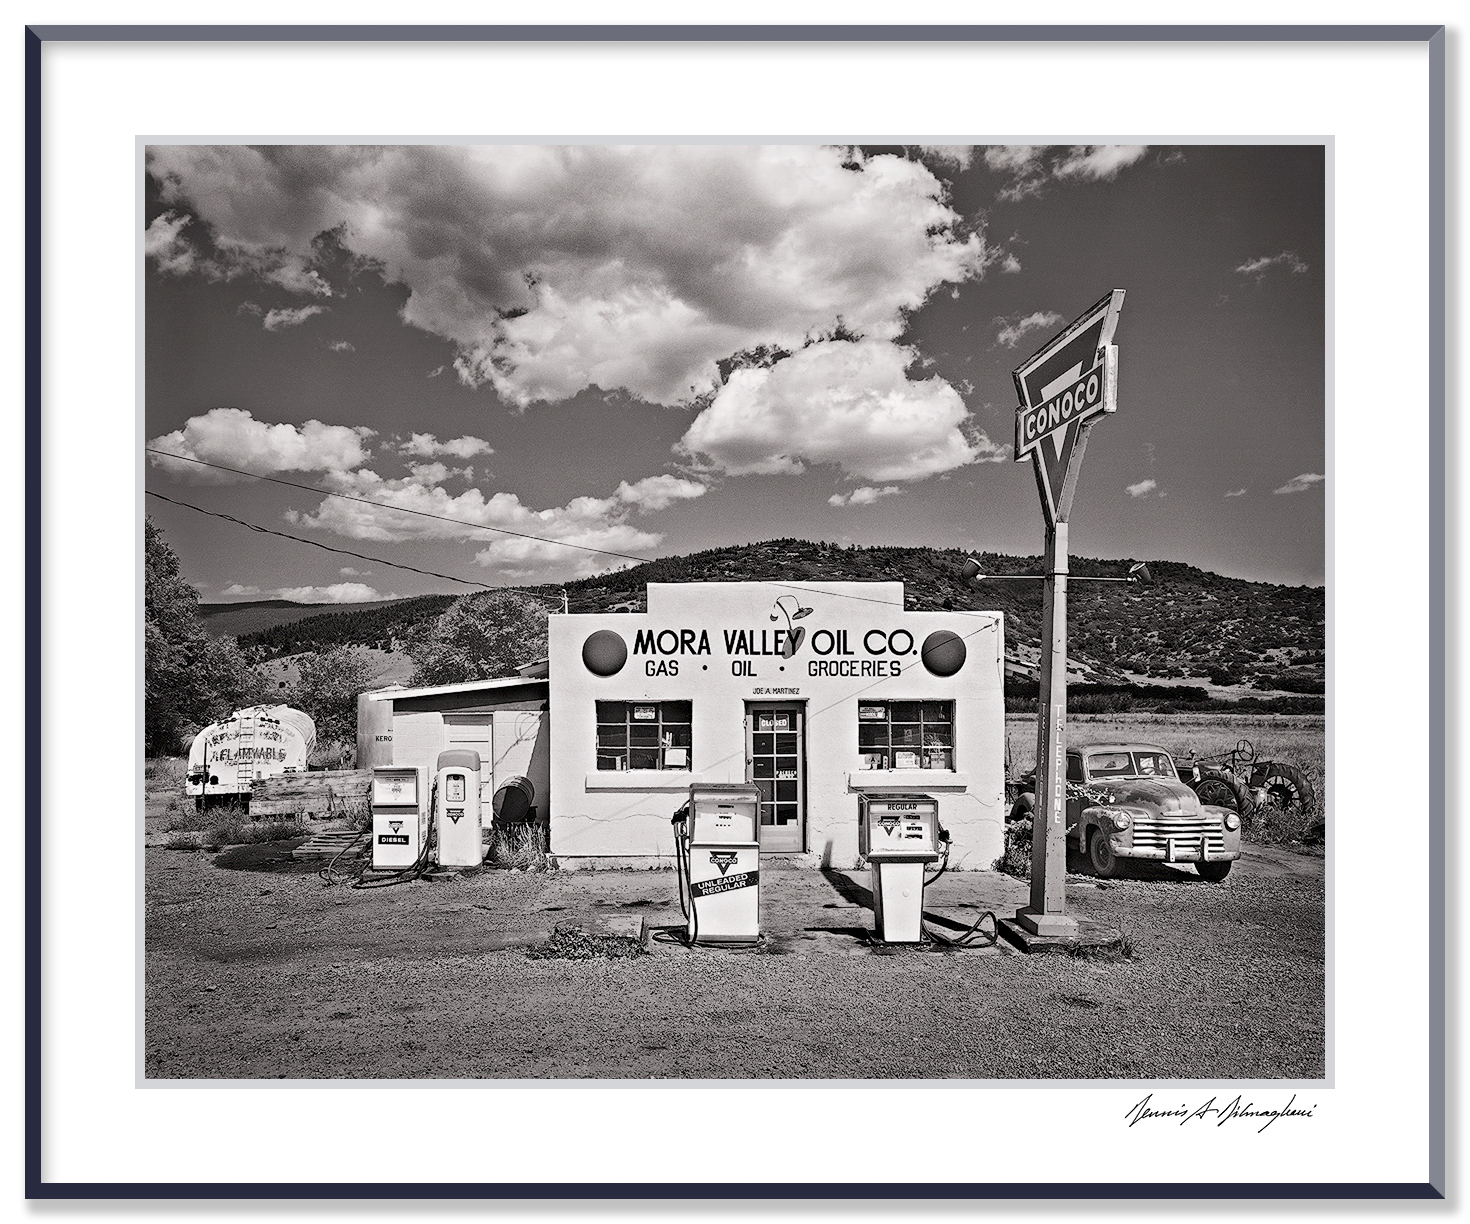 """Mora Valley Oil Company - Cleveland, New Mexico   This scene in the heart of Mora Valley, New Mexico, glowed in the early afternoon sun with down-home Americana spirit.  Vintage building, classic style gas pumps, trucks, tractor, big sky... The granddaughter of the original gas station owner found the image on the internet and wrote to me, """"Thank you for taking this photo. It brought a tear of joy to see something so dear to my family as it used to be in the """"good old days""""."""